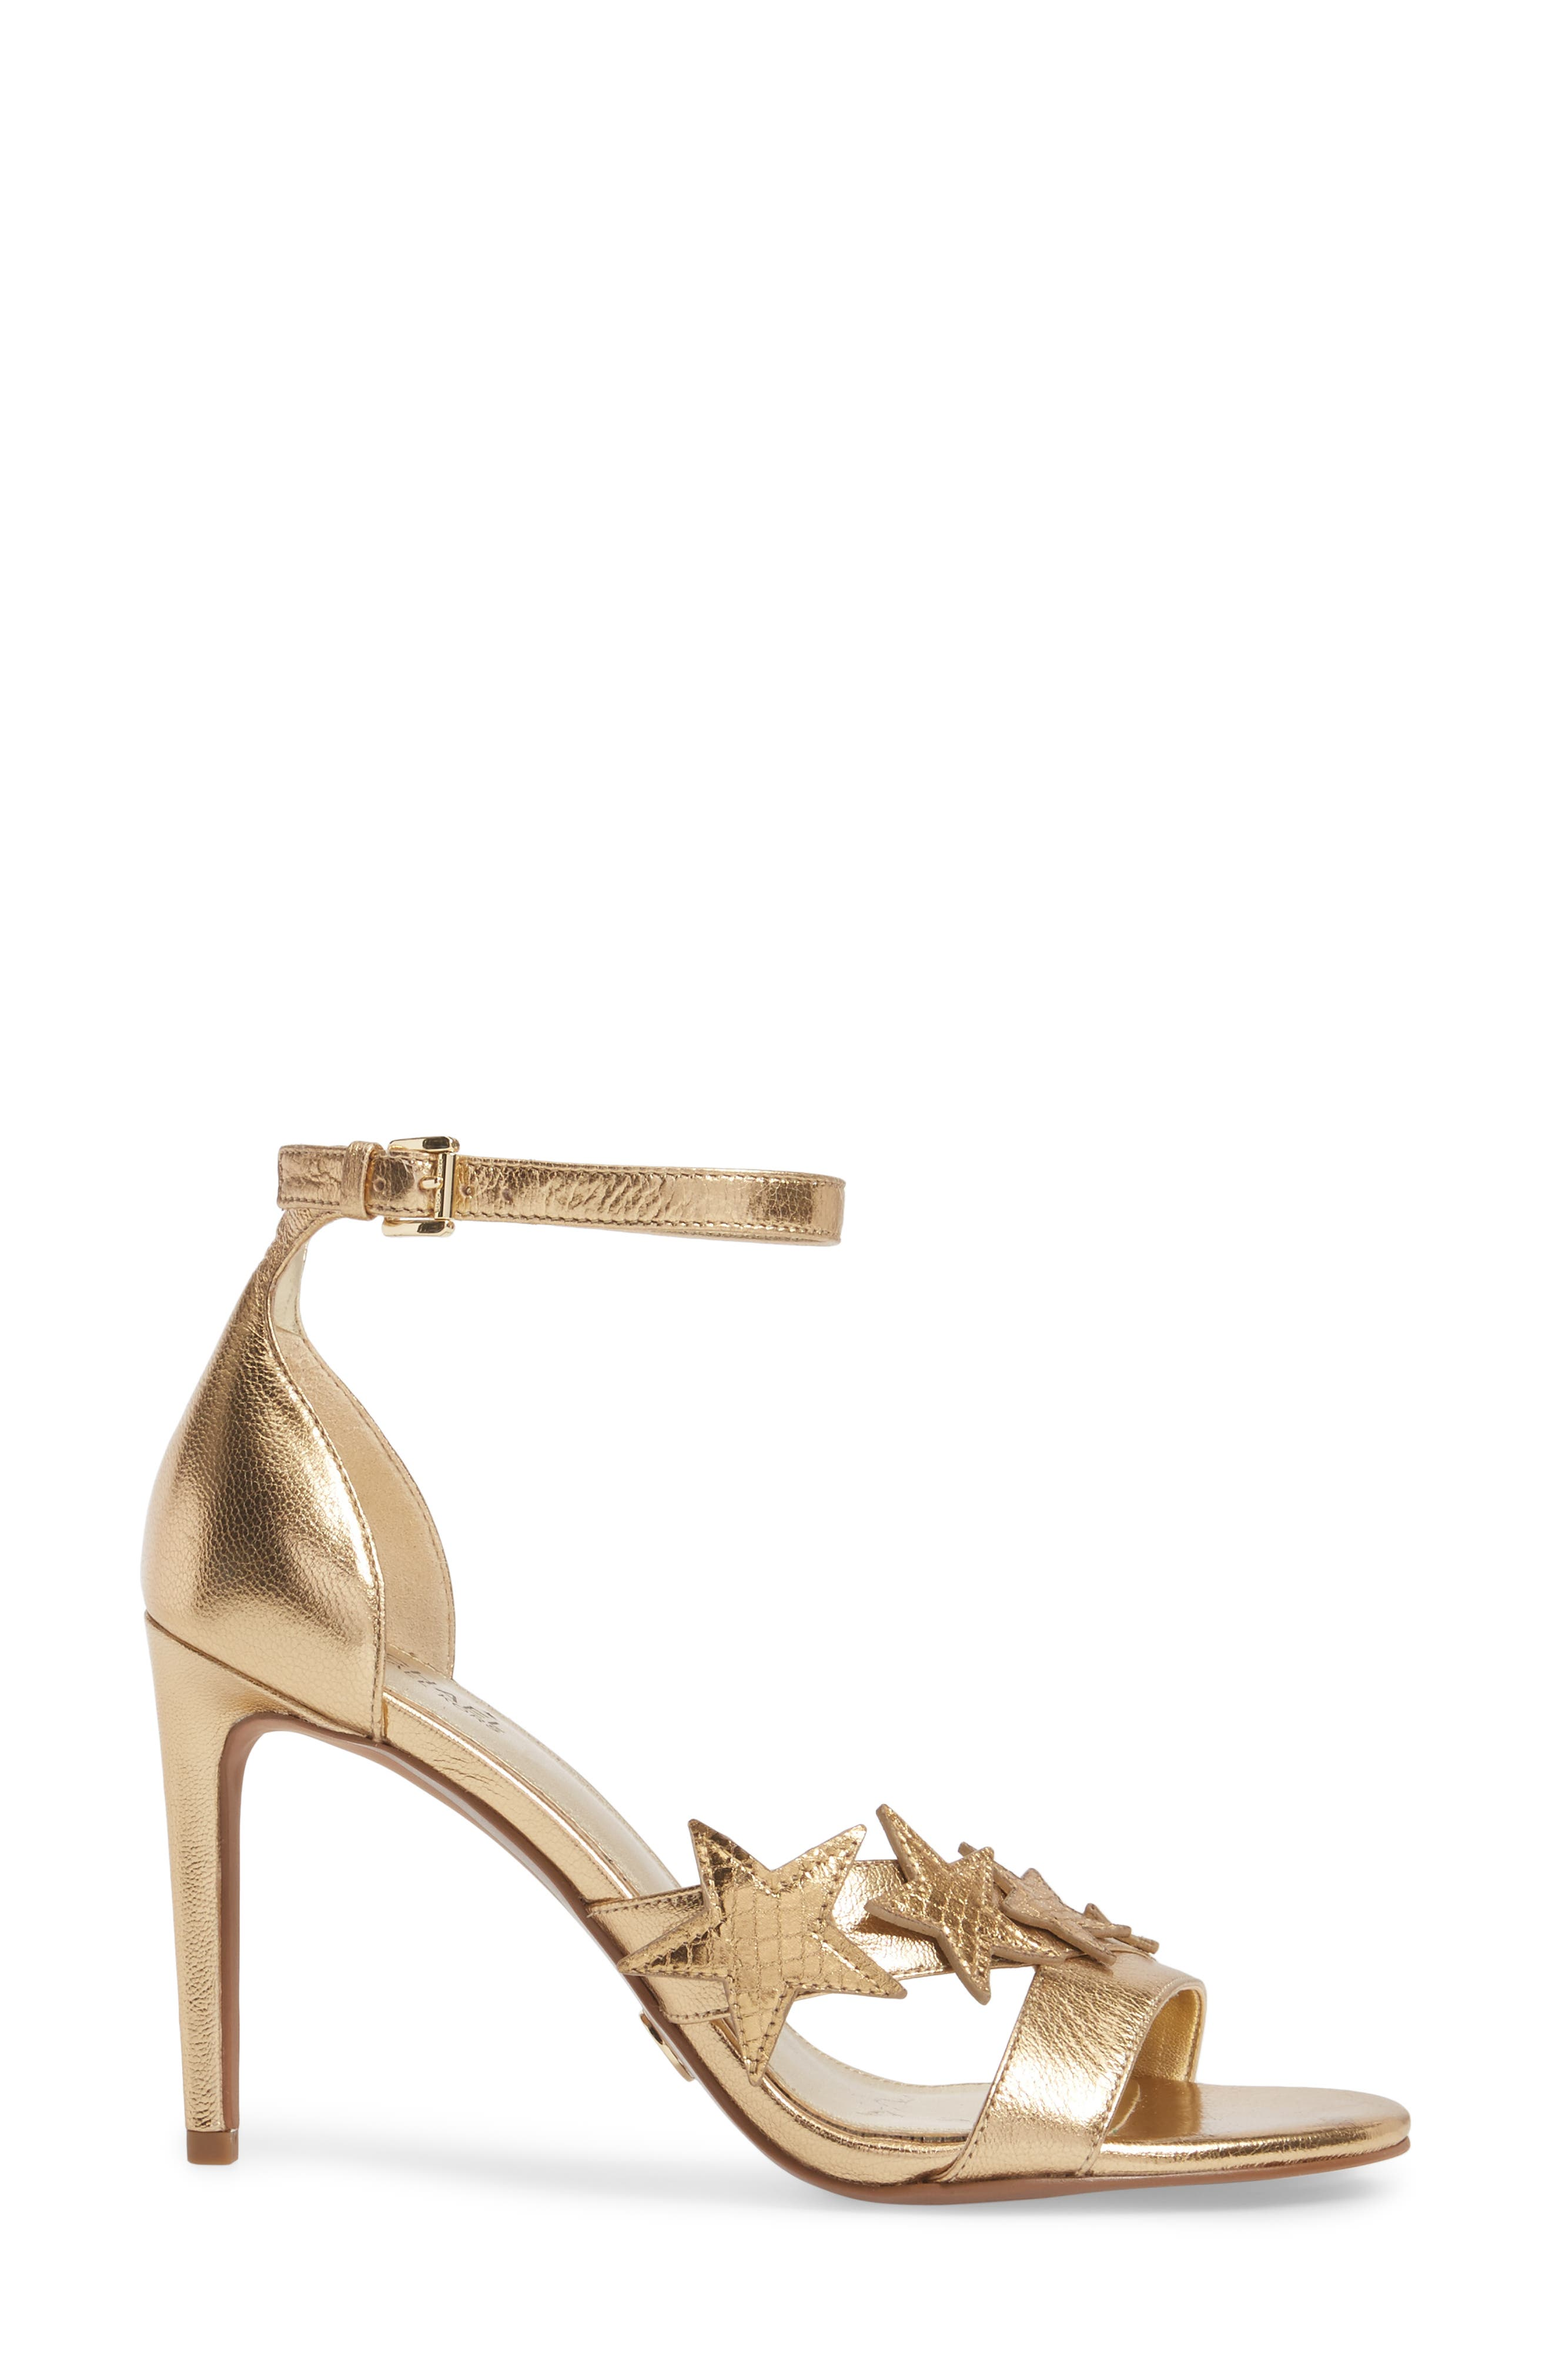 Lexie Sandal,                             Alternate thumbnail 3, color,                             Pale Gold Nappa Leather